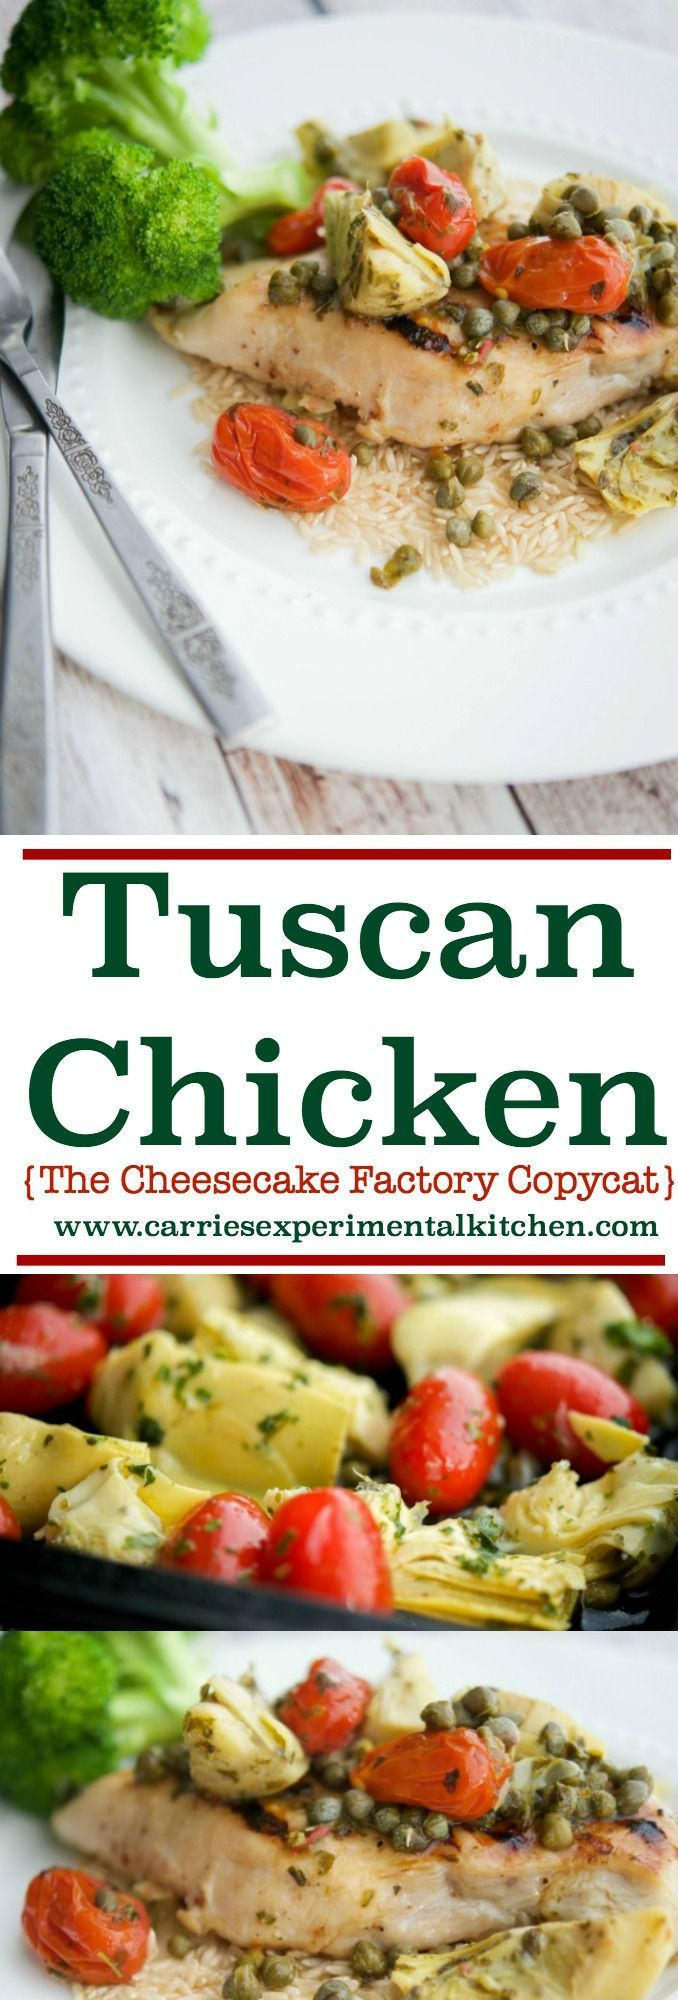 Chicken (The Cheesecake Factory Copycat) Just because The Cheesecake Factory has this Tuscan Chicken on their Skinnylicious menu, it is loaded with so many fresh, Mediterranean flavors you will not miss all of the extra calories. Learn how to make this popular restaurant entree at home.Just because The Cheesecake Factory has this Tuscan...